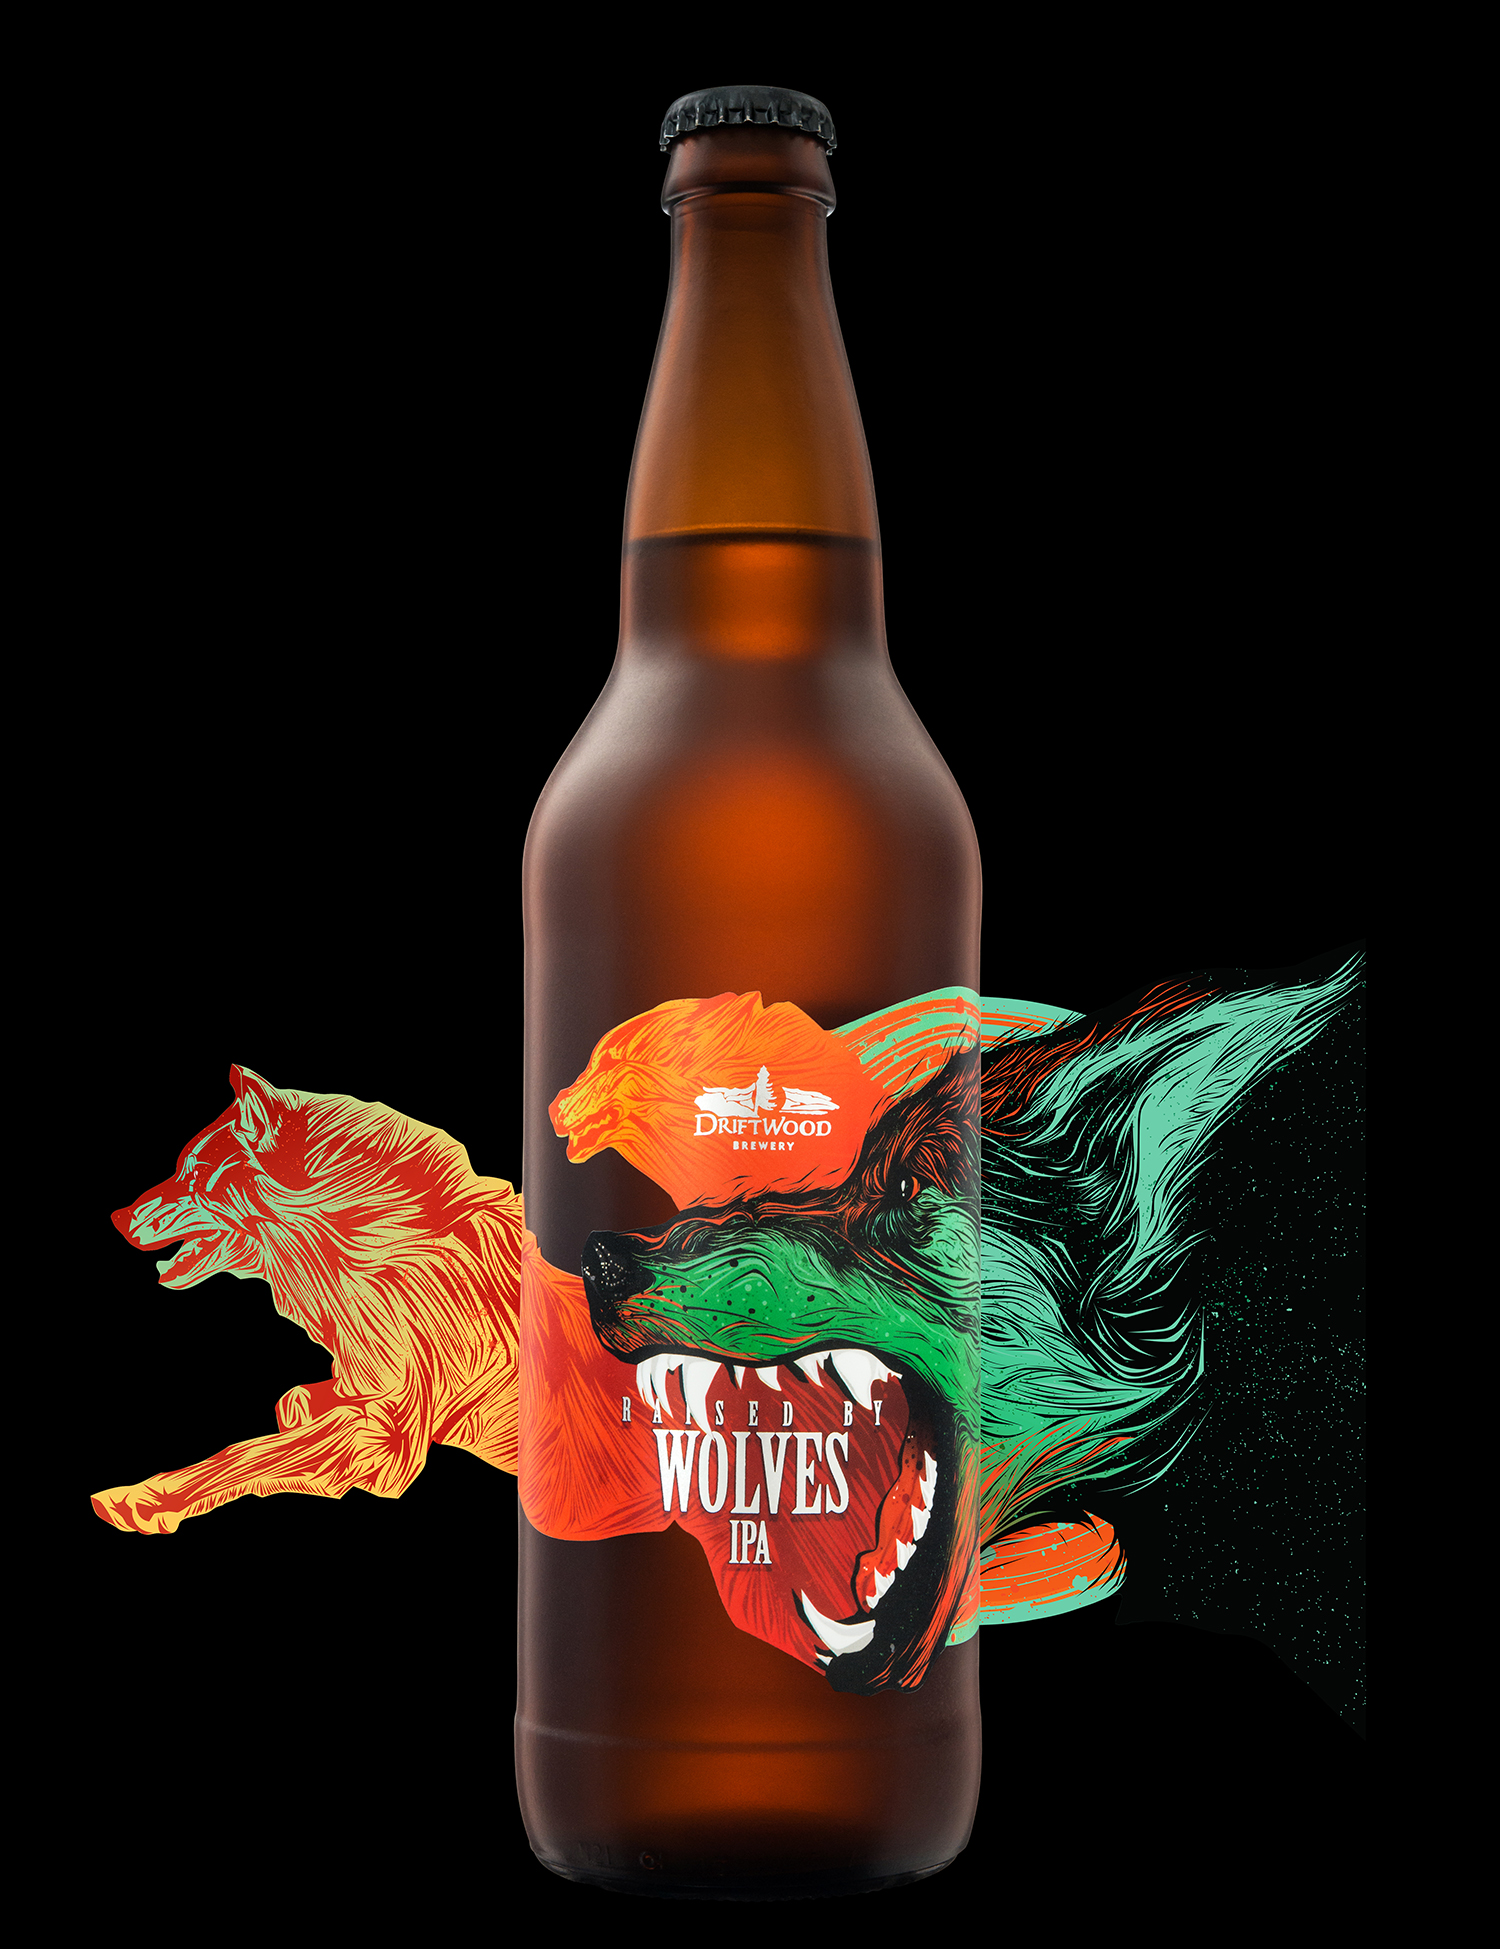 Packaging Design for Driftwood Brewery's Raised By Wolves Wild IPA